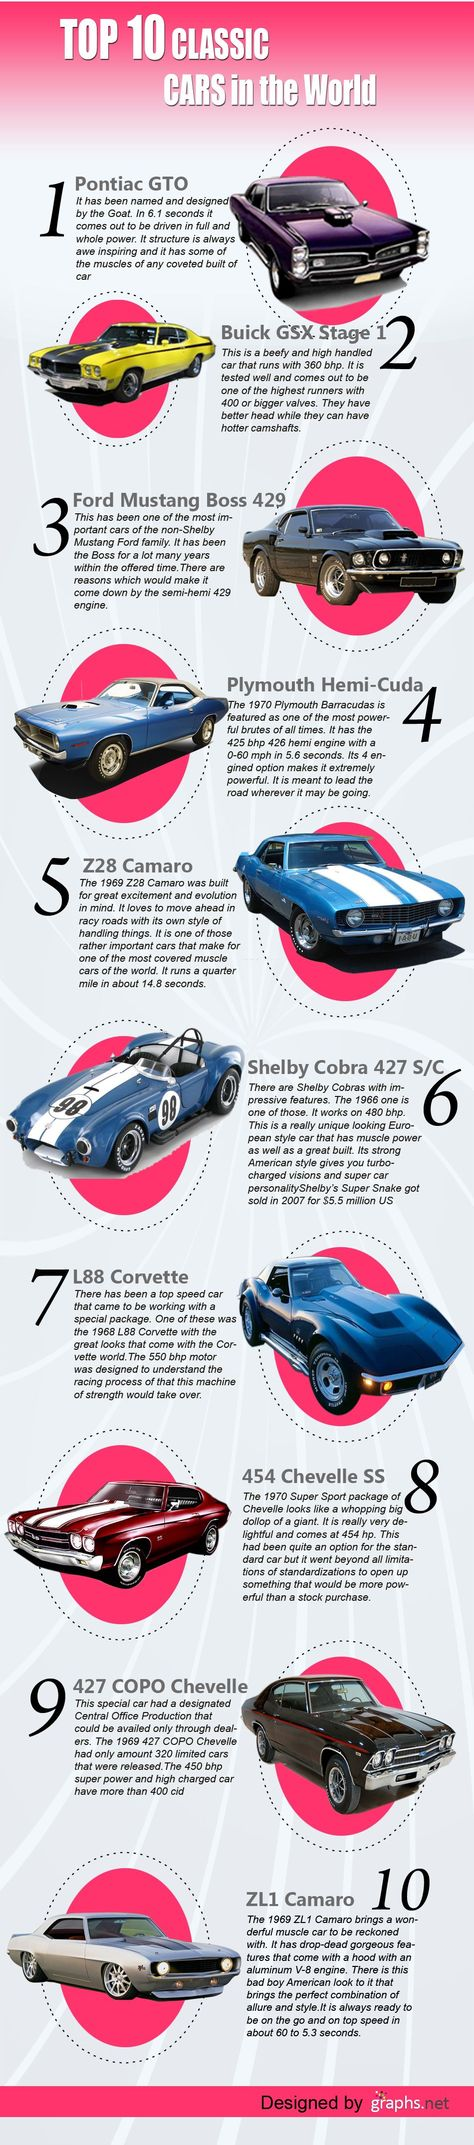 Best 25+ Classic car restoration ideas on Pinterest | Ford classic ...